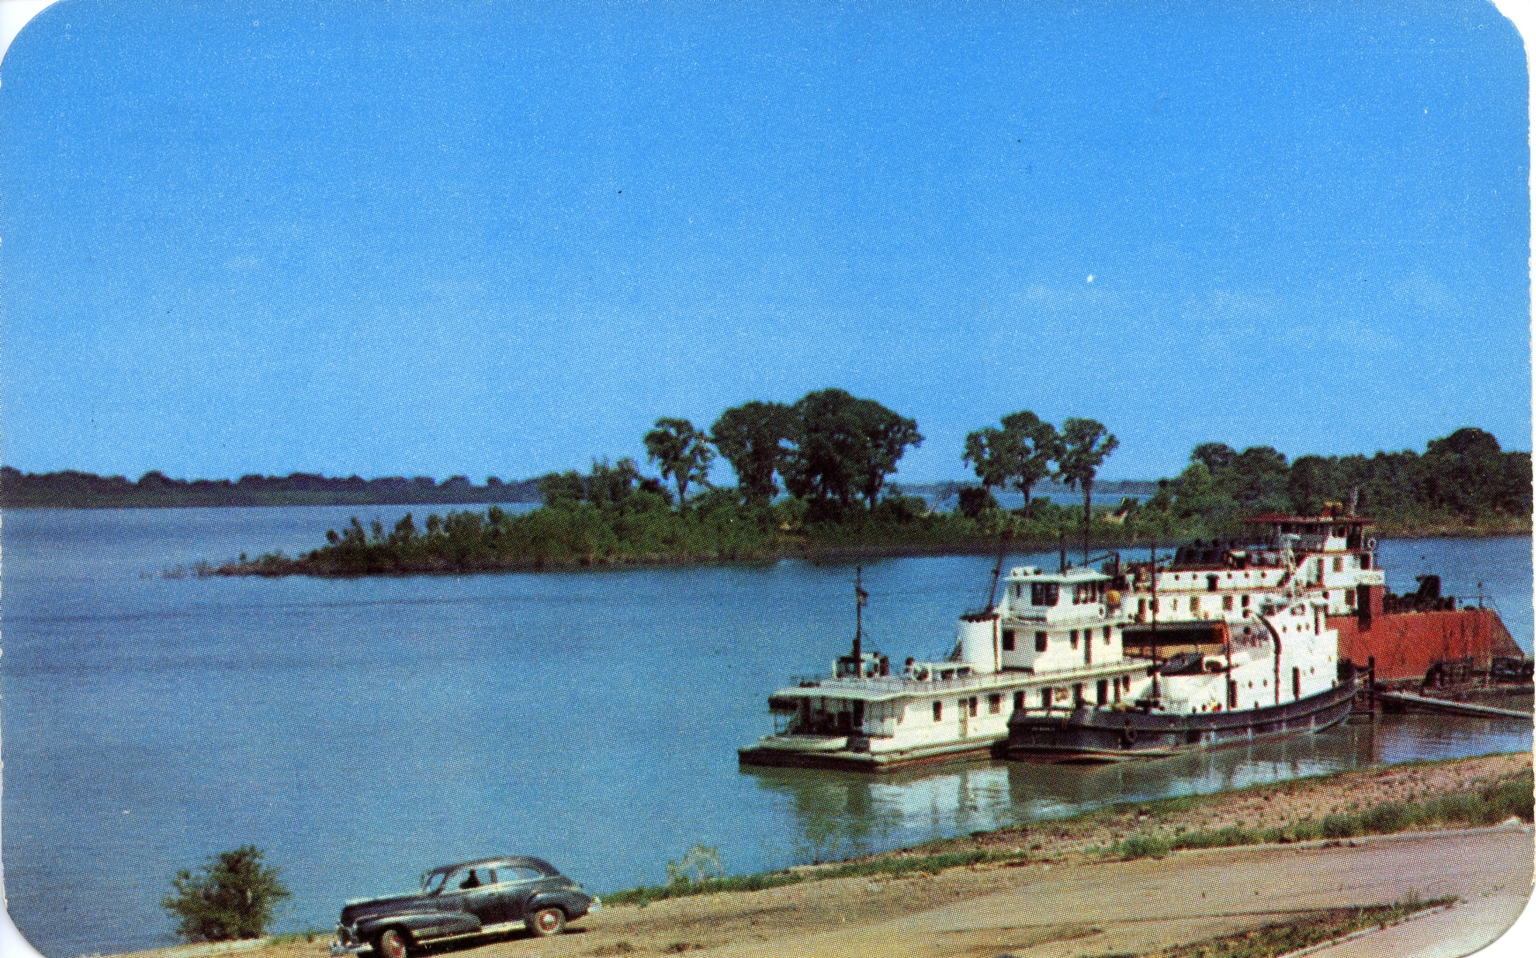 Junction of Ohio and Tennessee Rivers at Paducah (KY)